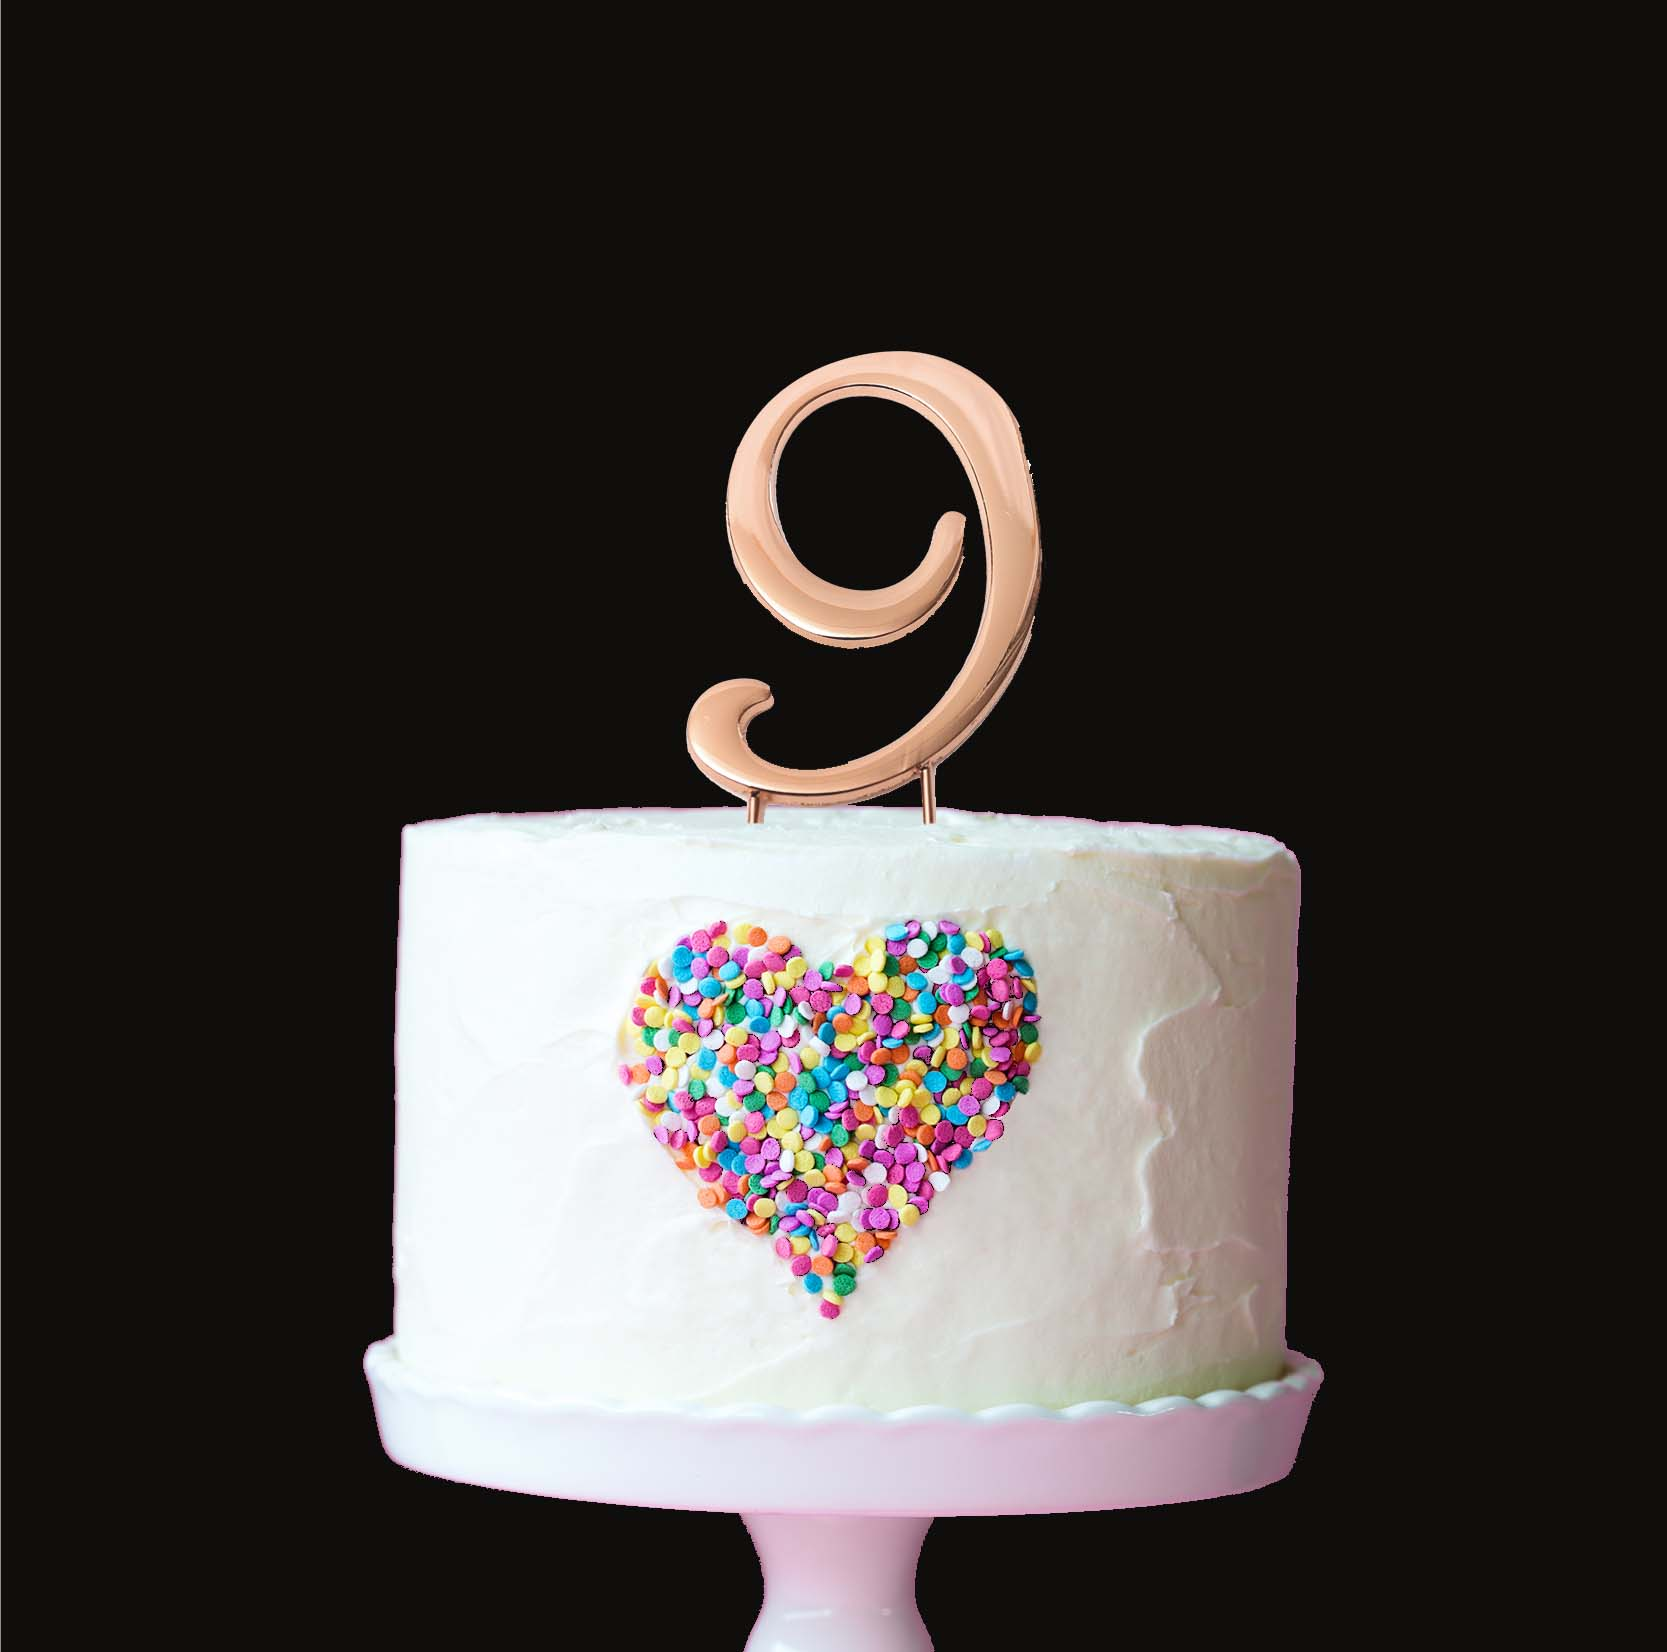 ROSE GOLD Cake Topper (7cm) - NUMBER 9